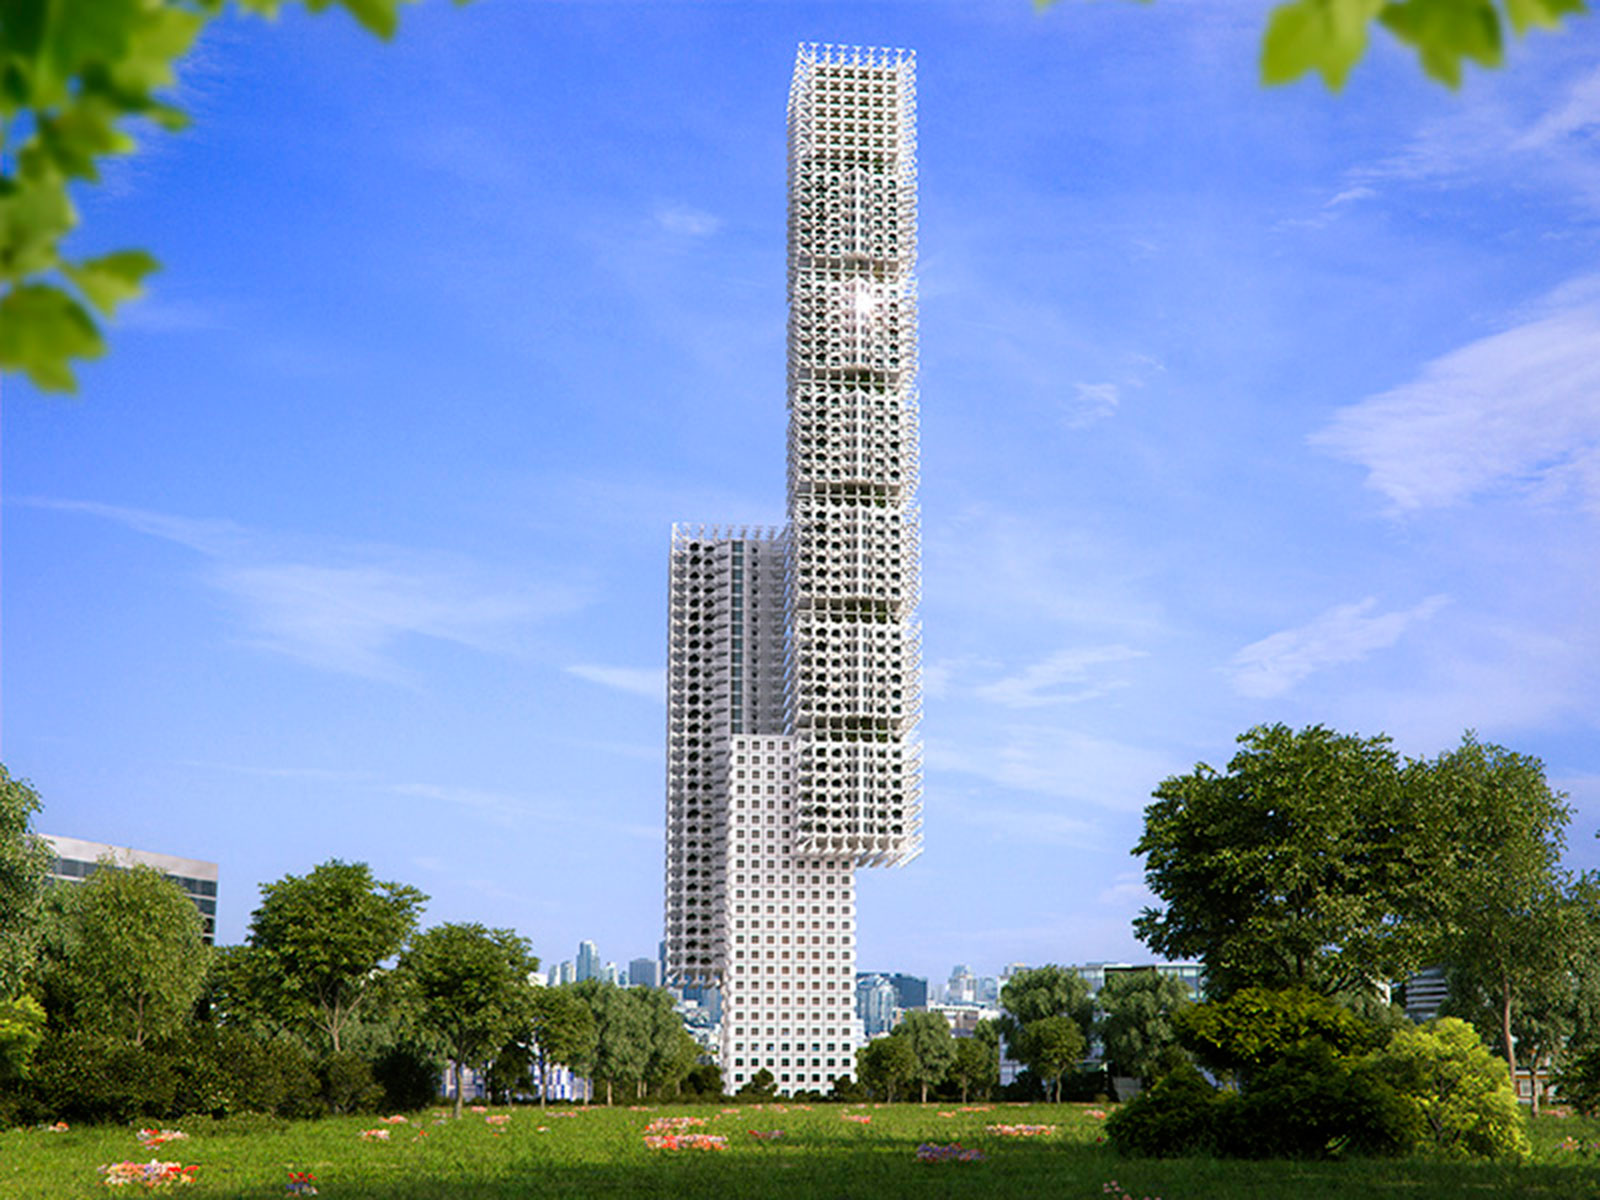 2019. MEX Eco-Tower. CDMX. México